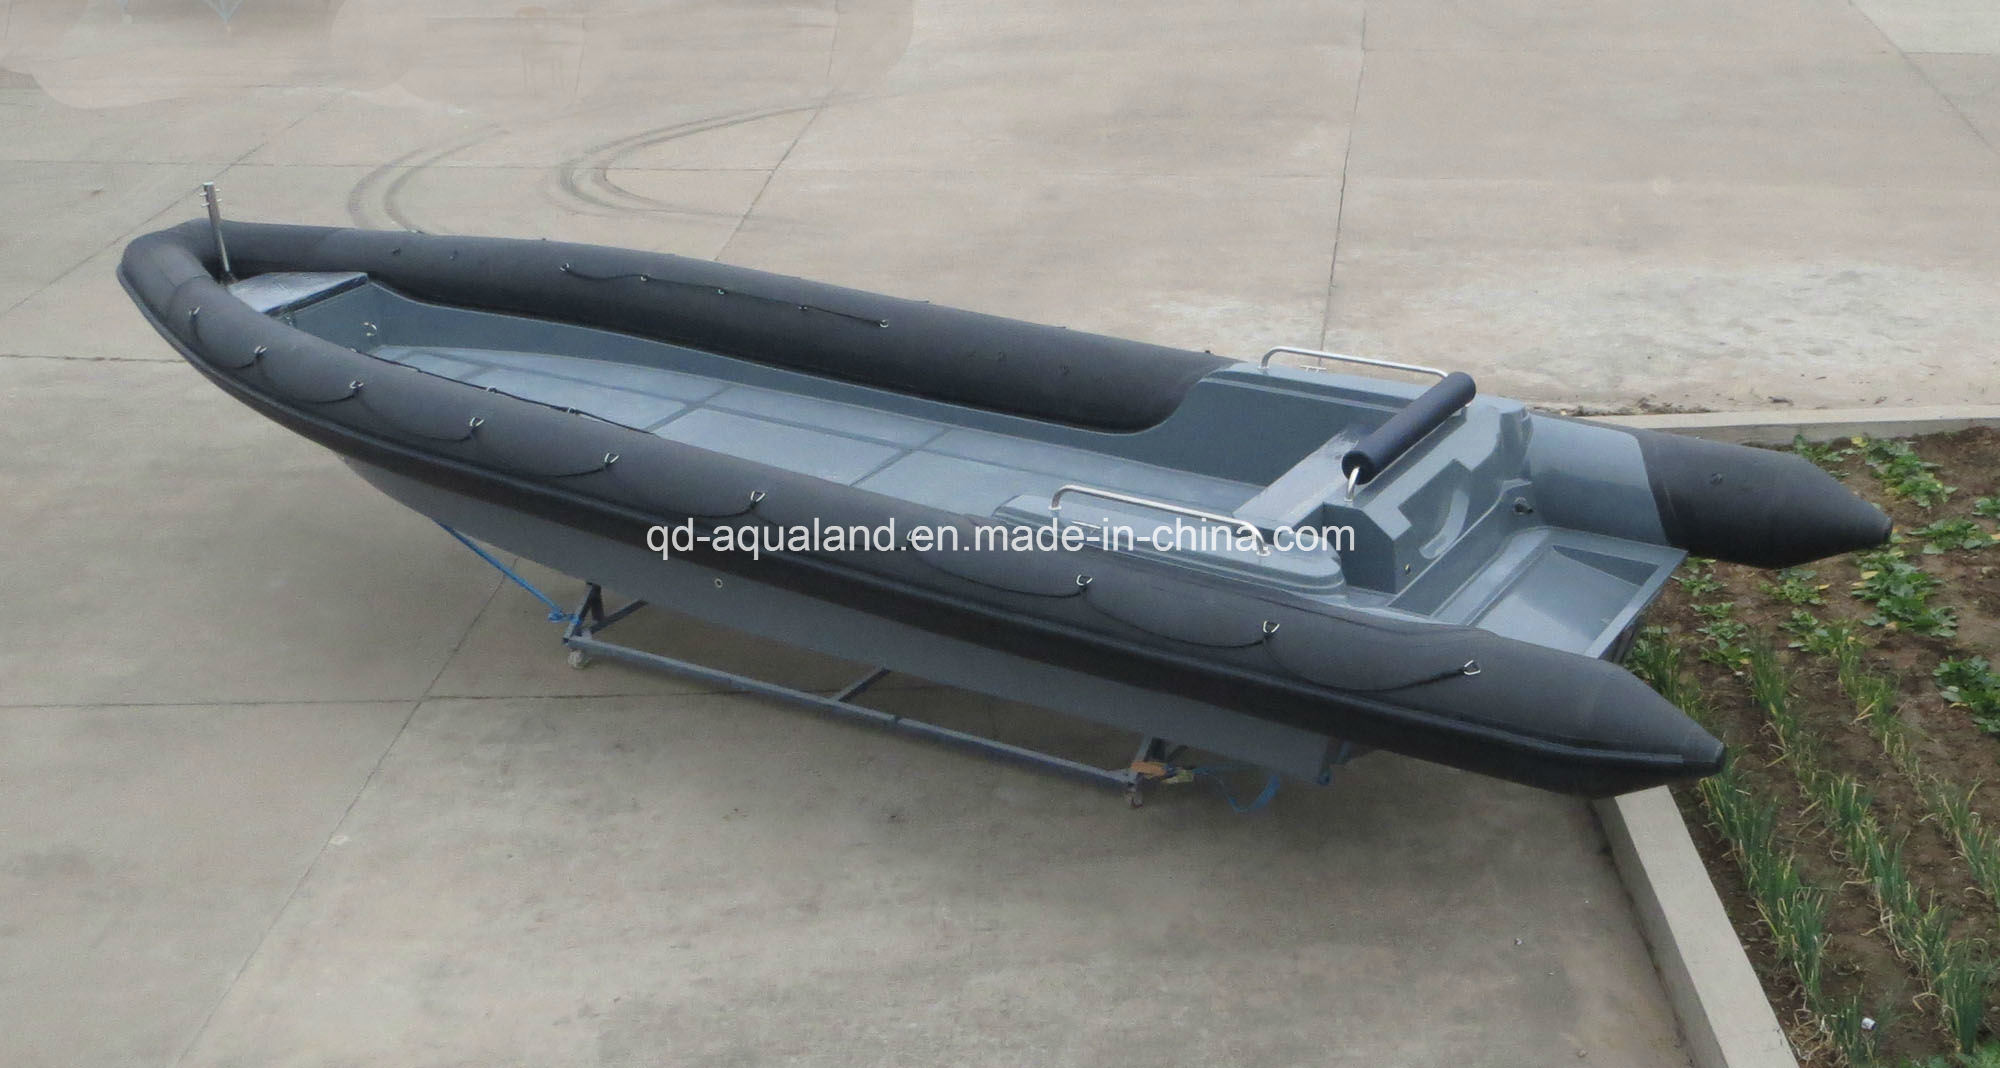 China Aqualand 36feet 11m Rigid Inflatable Motor Boat/Rib Patrol Boat/Rescue/Diving/Military Boat (RIB1050)